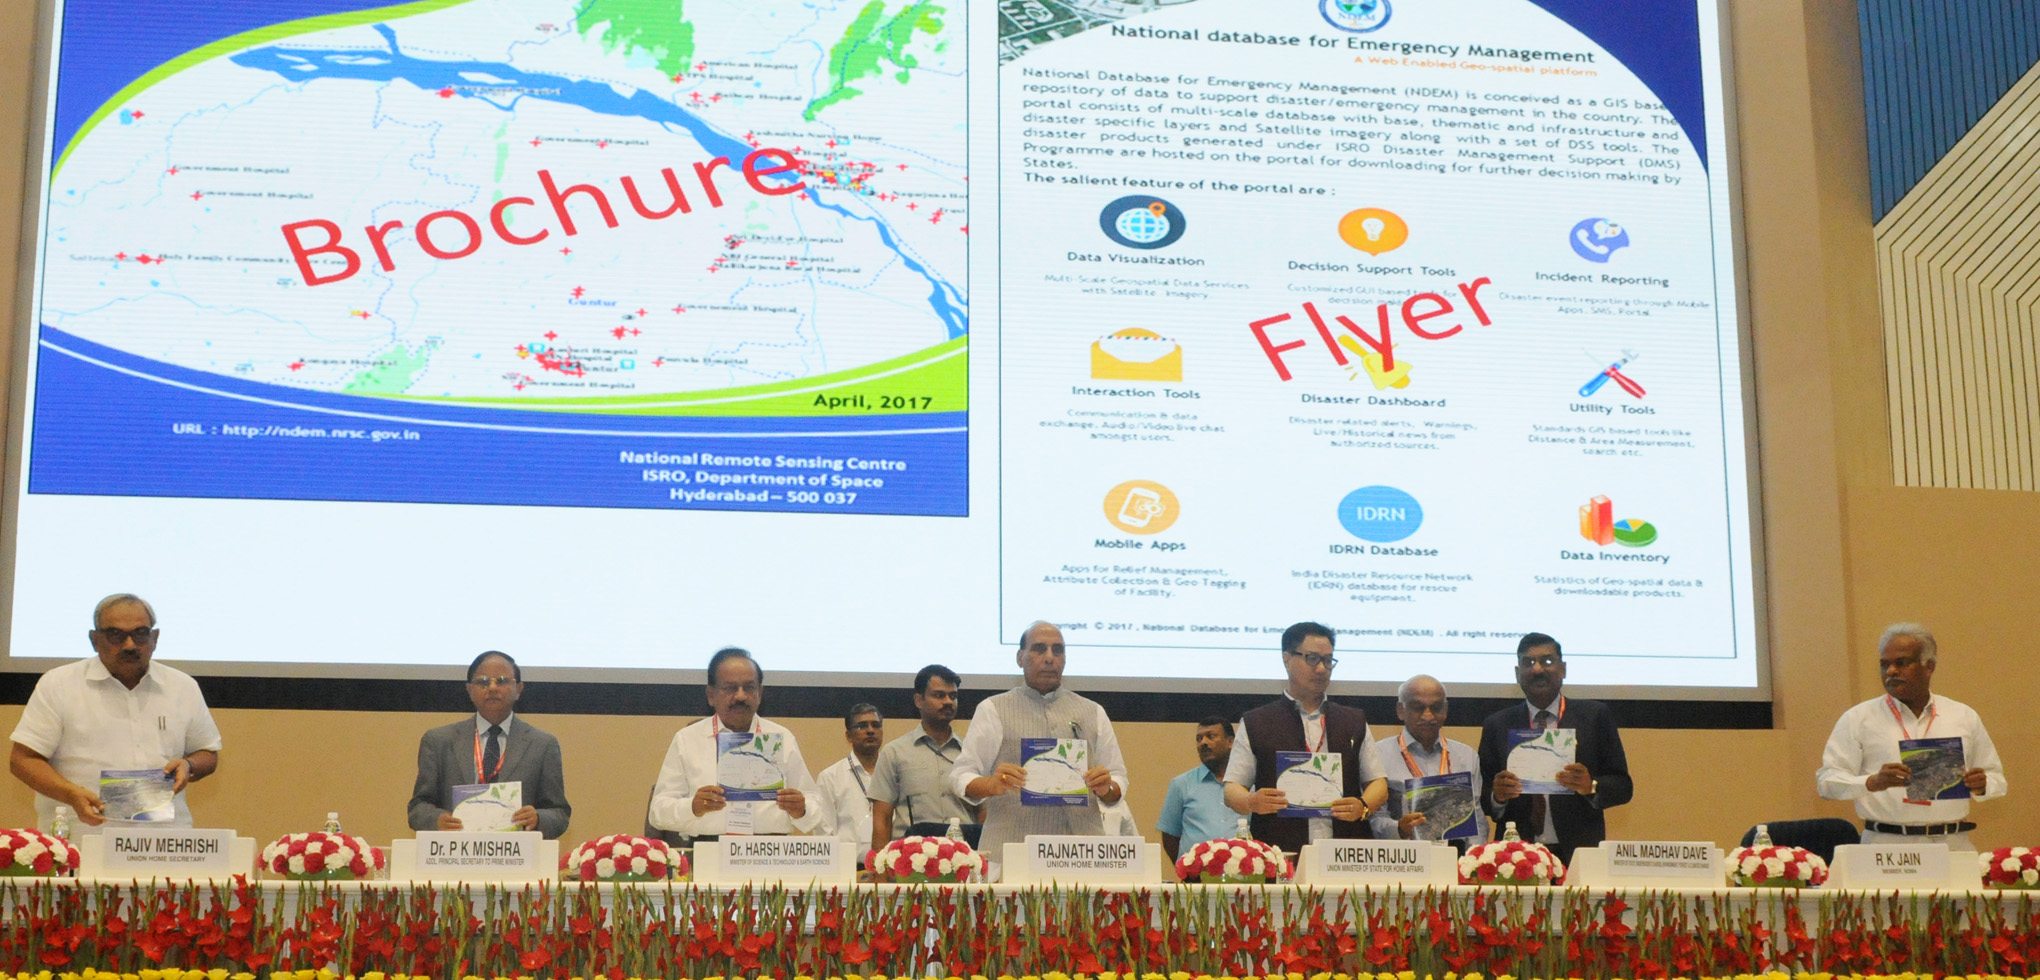 The Union Home Minister, Shri Rajnath Singh releasing the brochure and flyer on the National Database for Emergency Management 3.0, developed by the Department of Space, during the inaugural session of the second meeting of the National Platform for Disaster Risk Reduction (NPDRR), in New Delhi on May 15, 2017. 	The Union Home Minister, Shri Rajnath Singh, the Union Minister for Science & Technology and Earth Sciences, Dr. Harsh Vardhan, the Minister of State for Home Affairs, Shri Kiren Rijiju, the Union Home Secretary, Shri Rajiv Mehrishi, the Additional Principal Secretary to the Prime Minister, Dr. P.K. Mishra and other dignitaries are also seen.